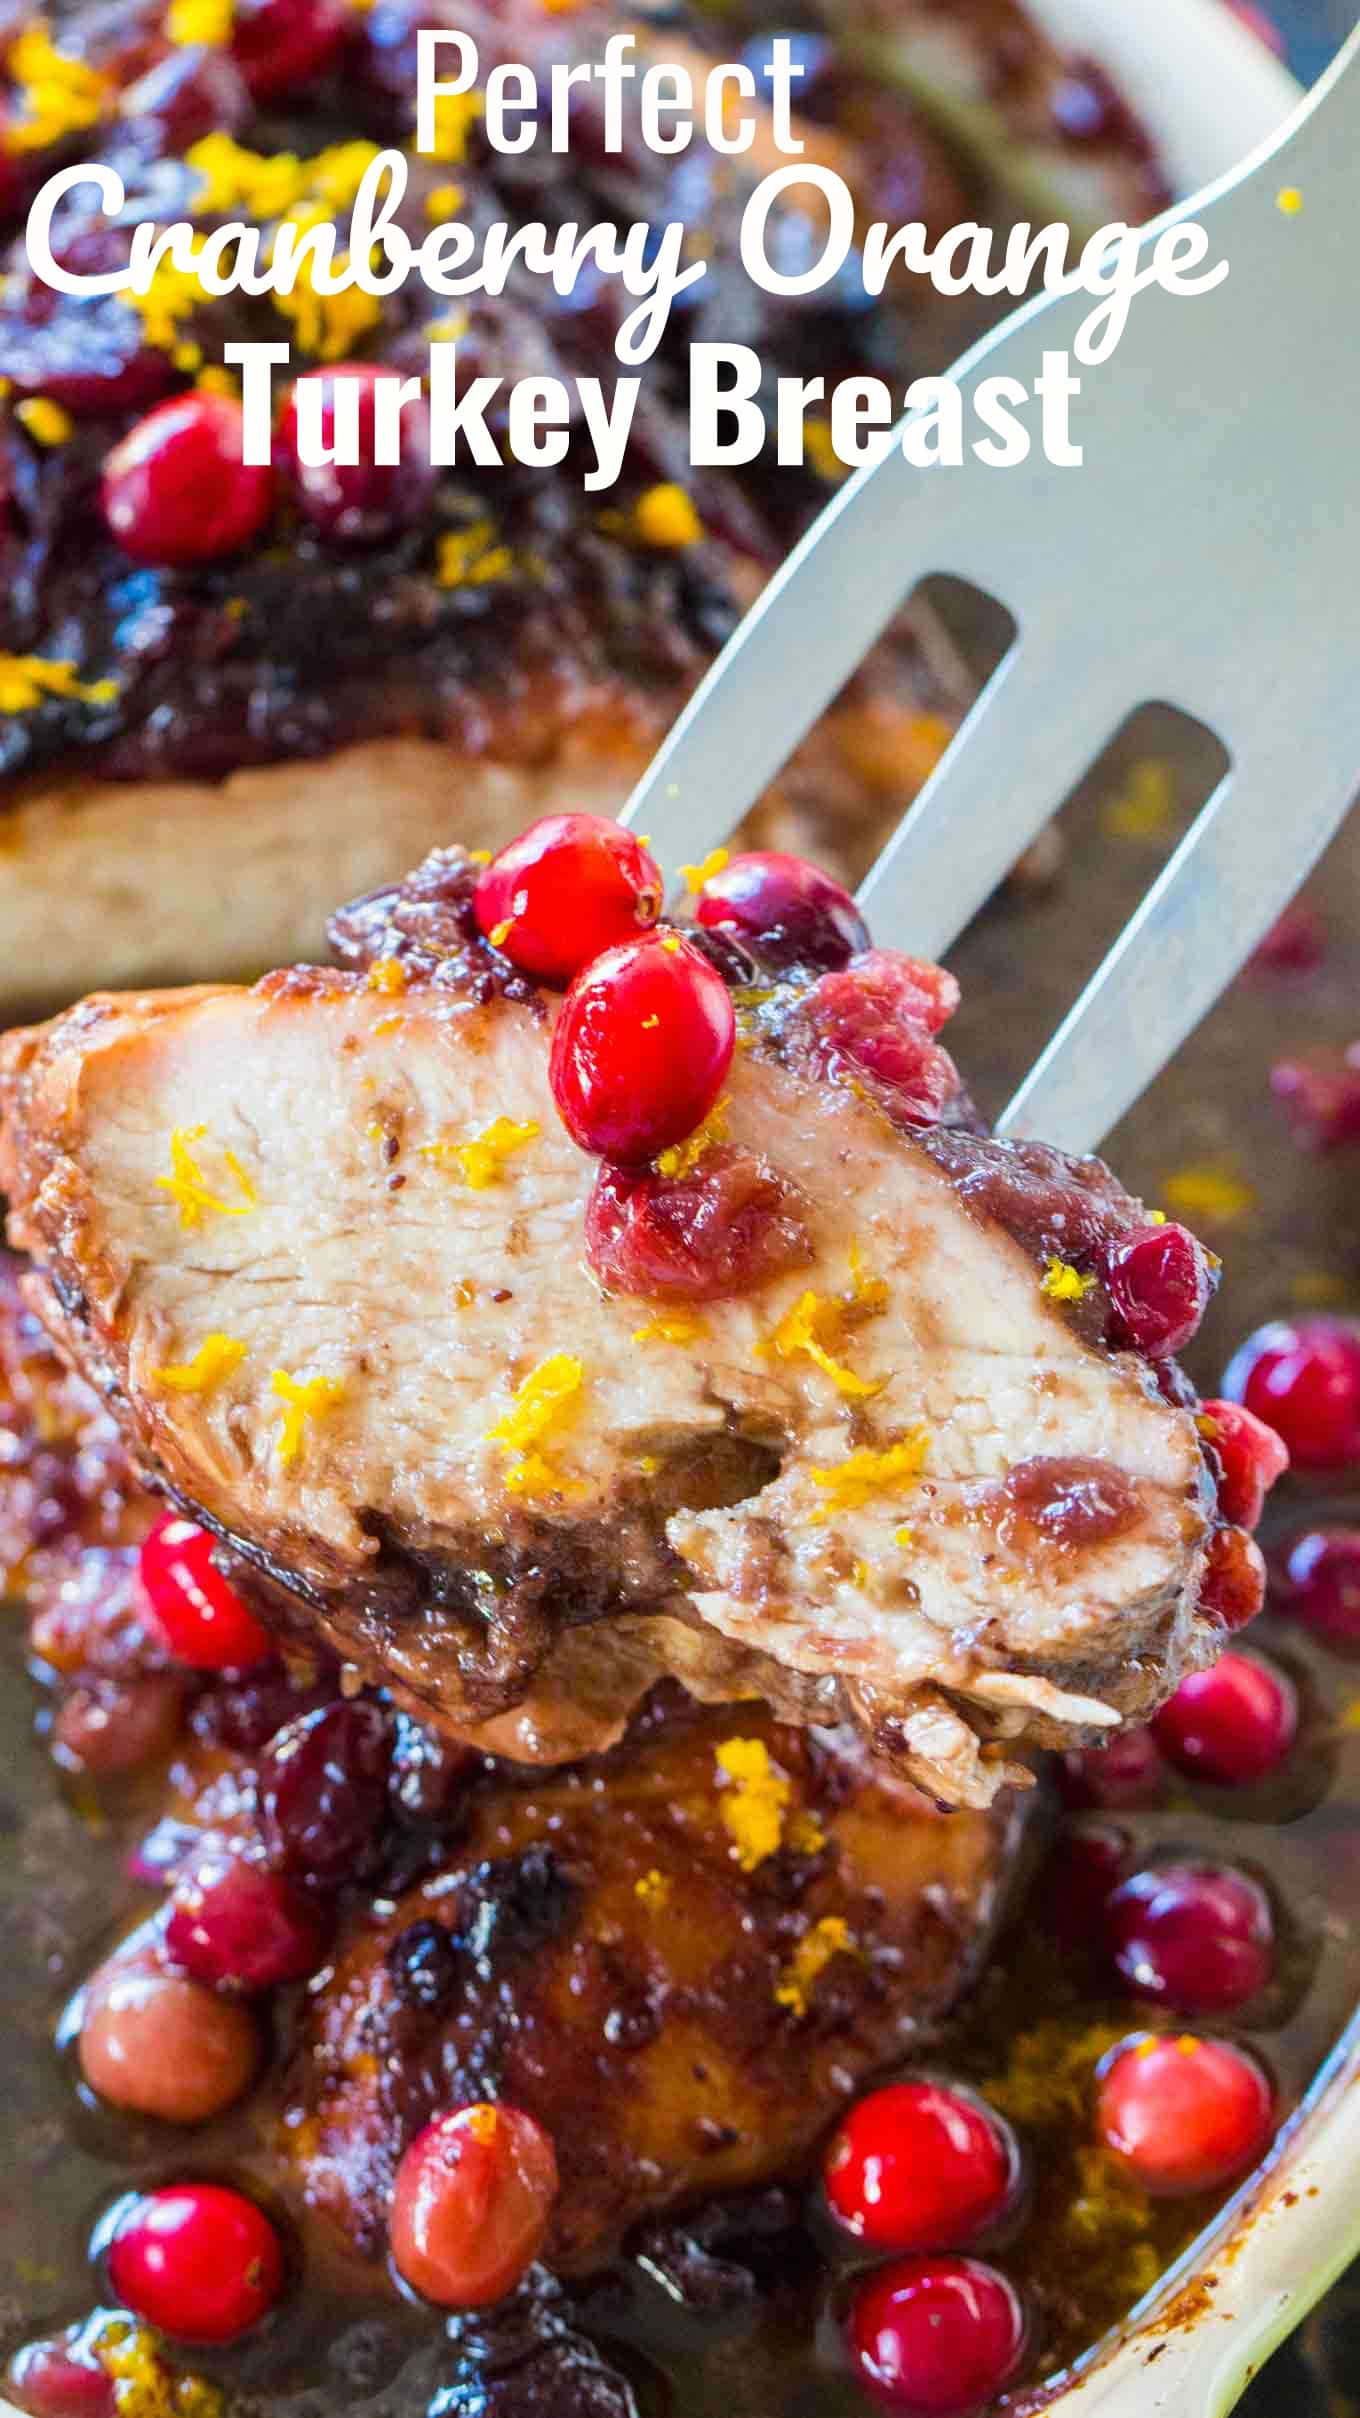 Cranberry Orange Turkey Breast Recipe